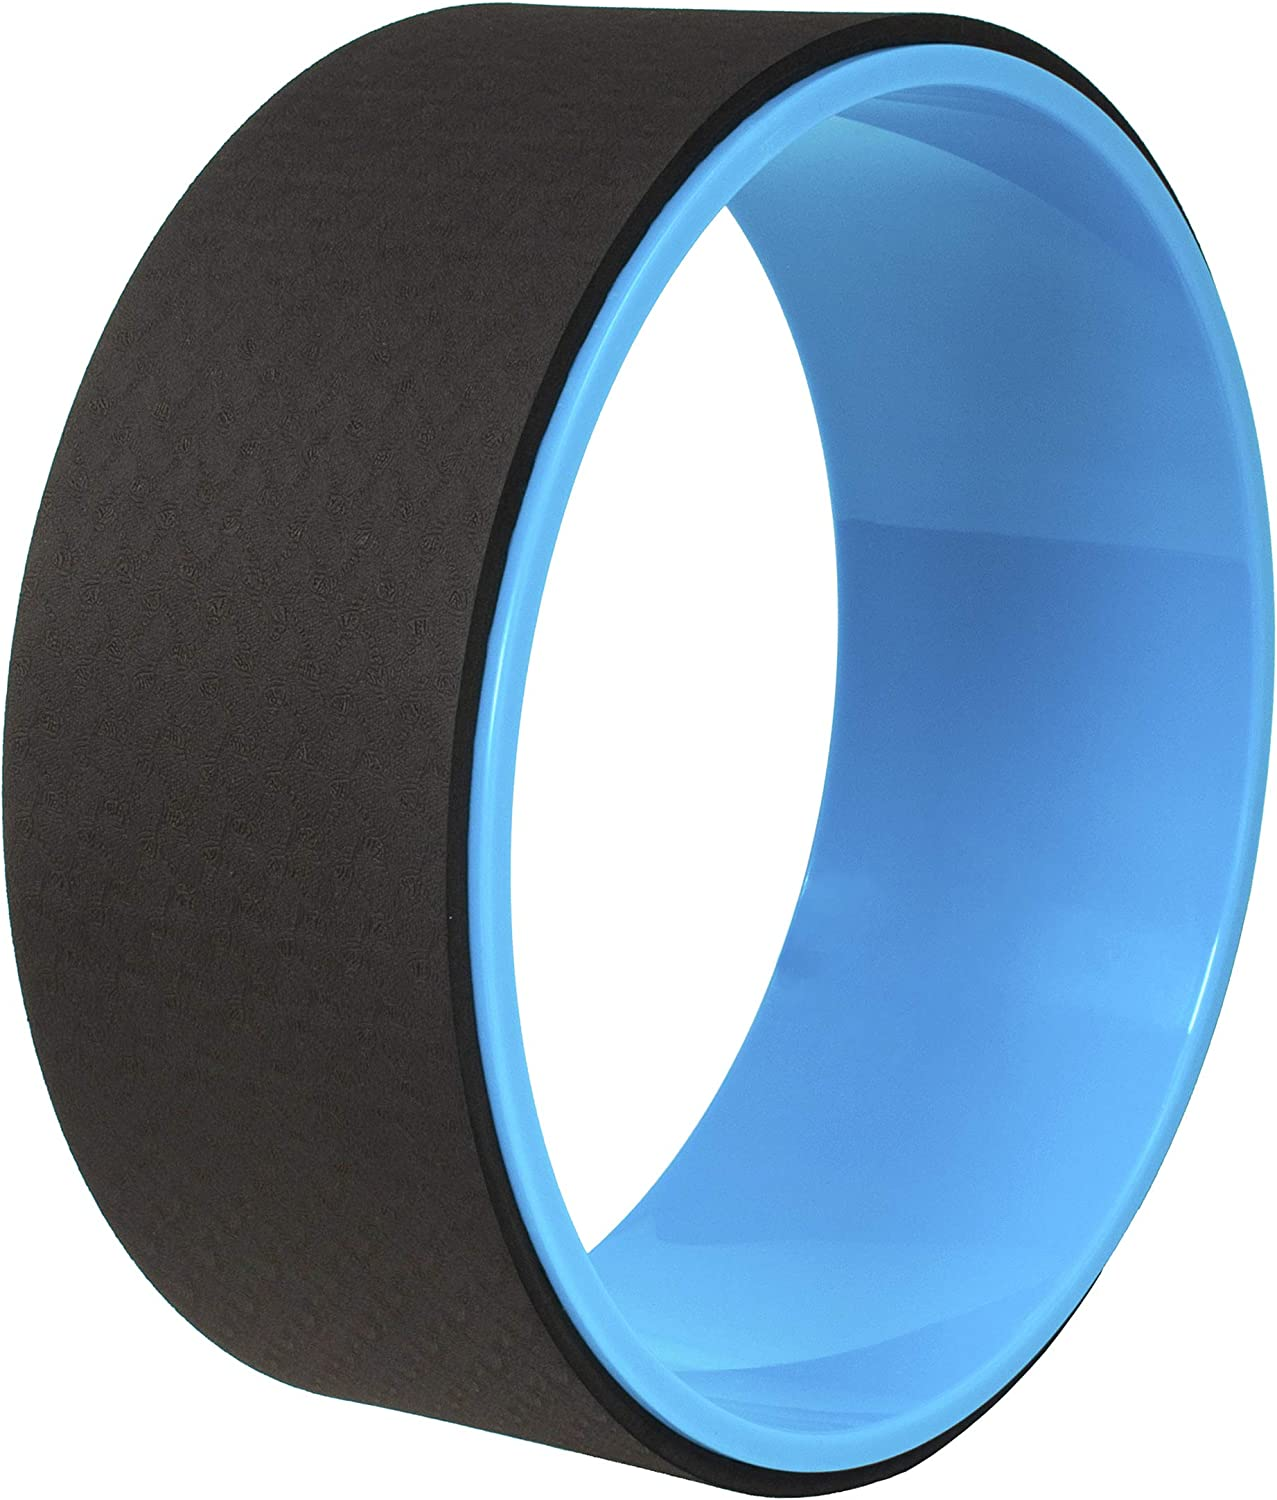 BalanceFrom Yoga Wheel for Stretching Dharma Yoga Prop Wheel, Comfortable Support for Yoga Poses and Backbends